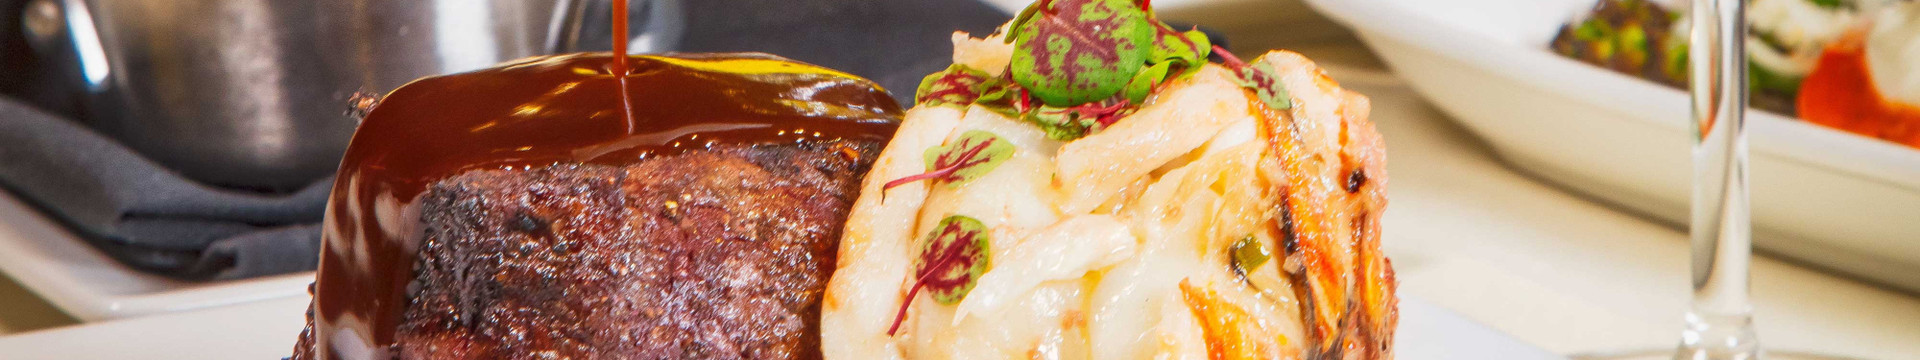 EDGE Steakhouse at our Las Vegas Hotel and Casino | World-Class Cuisine